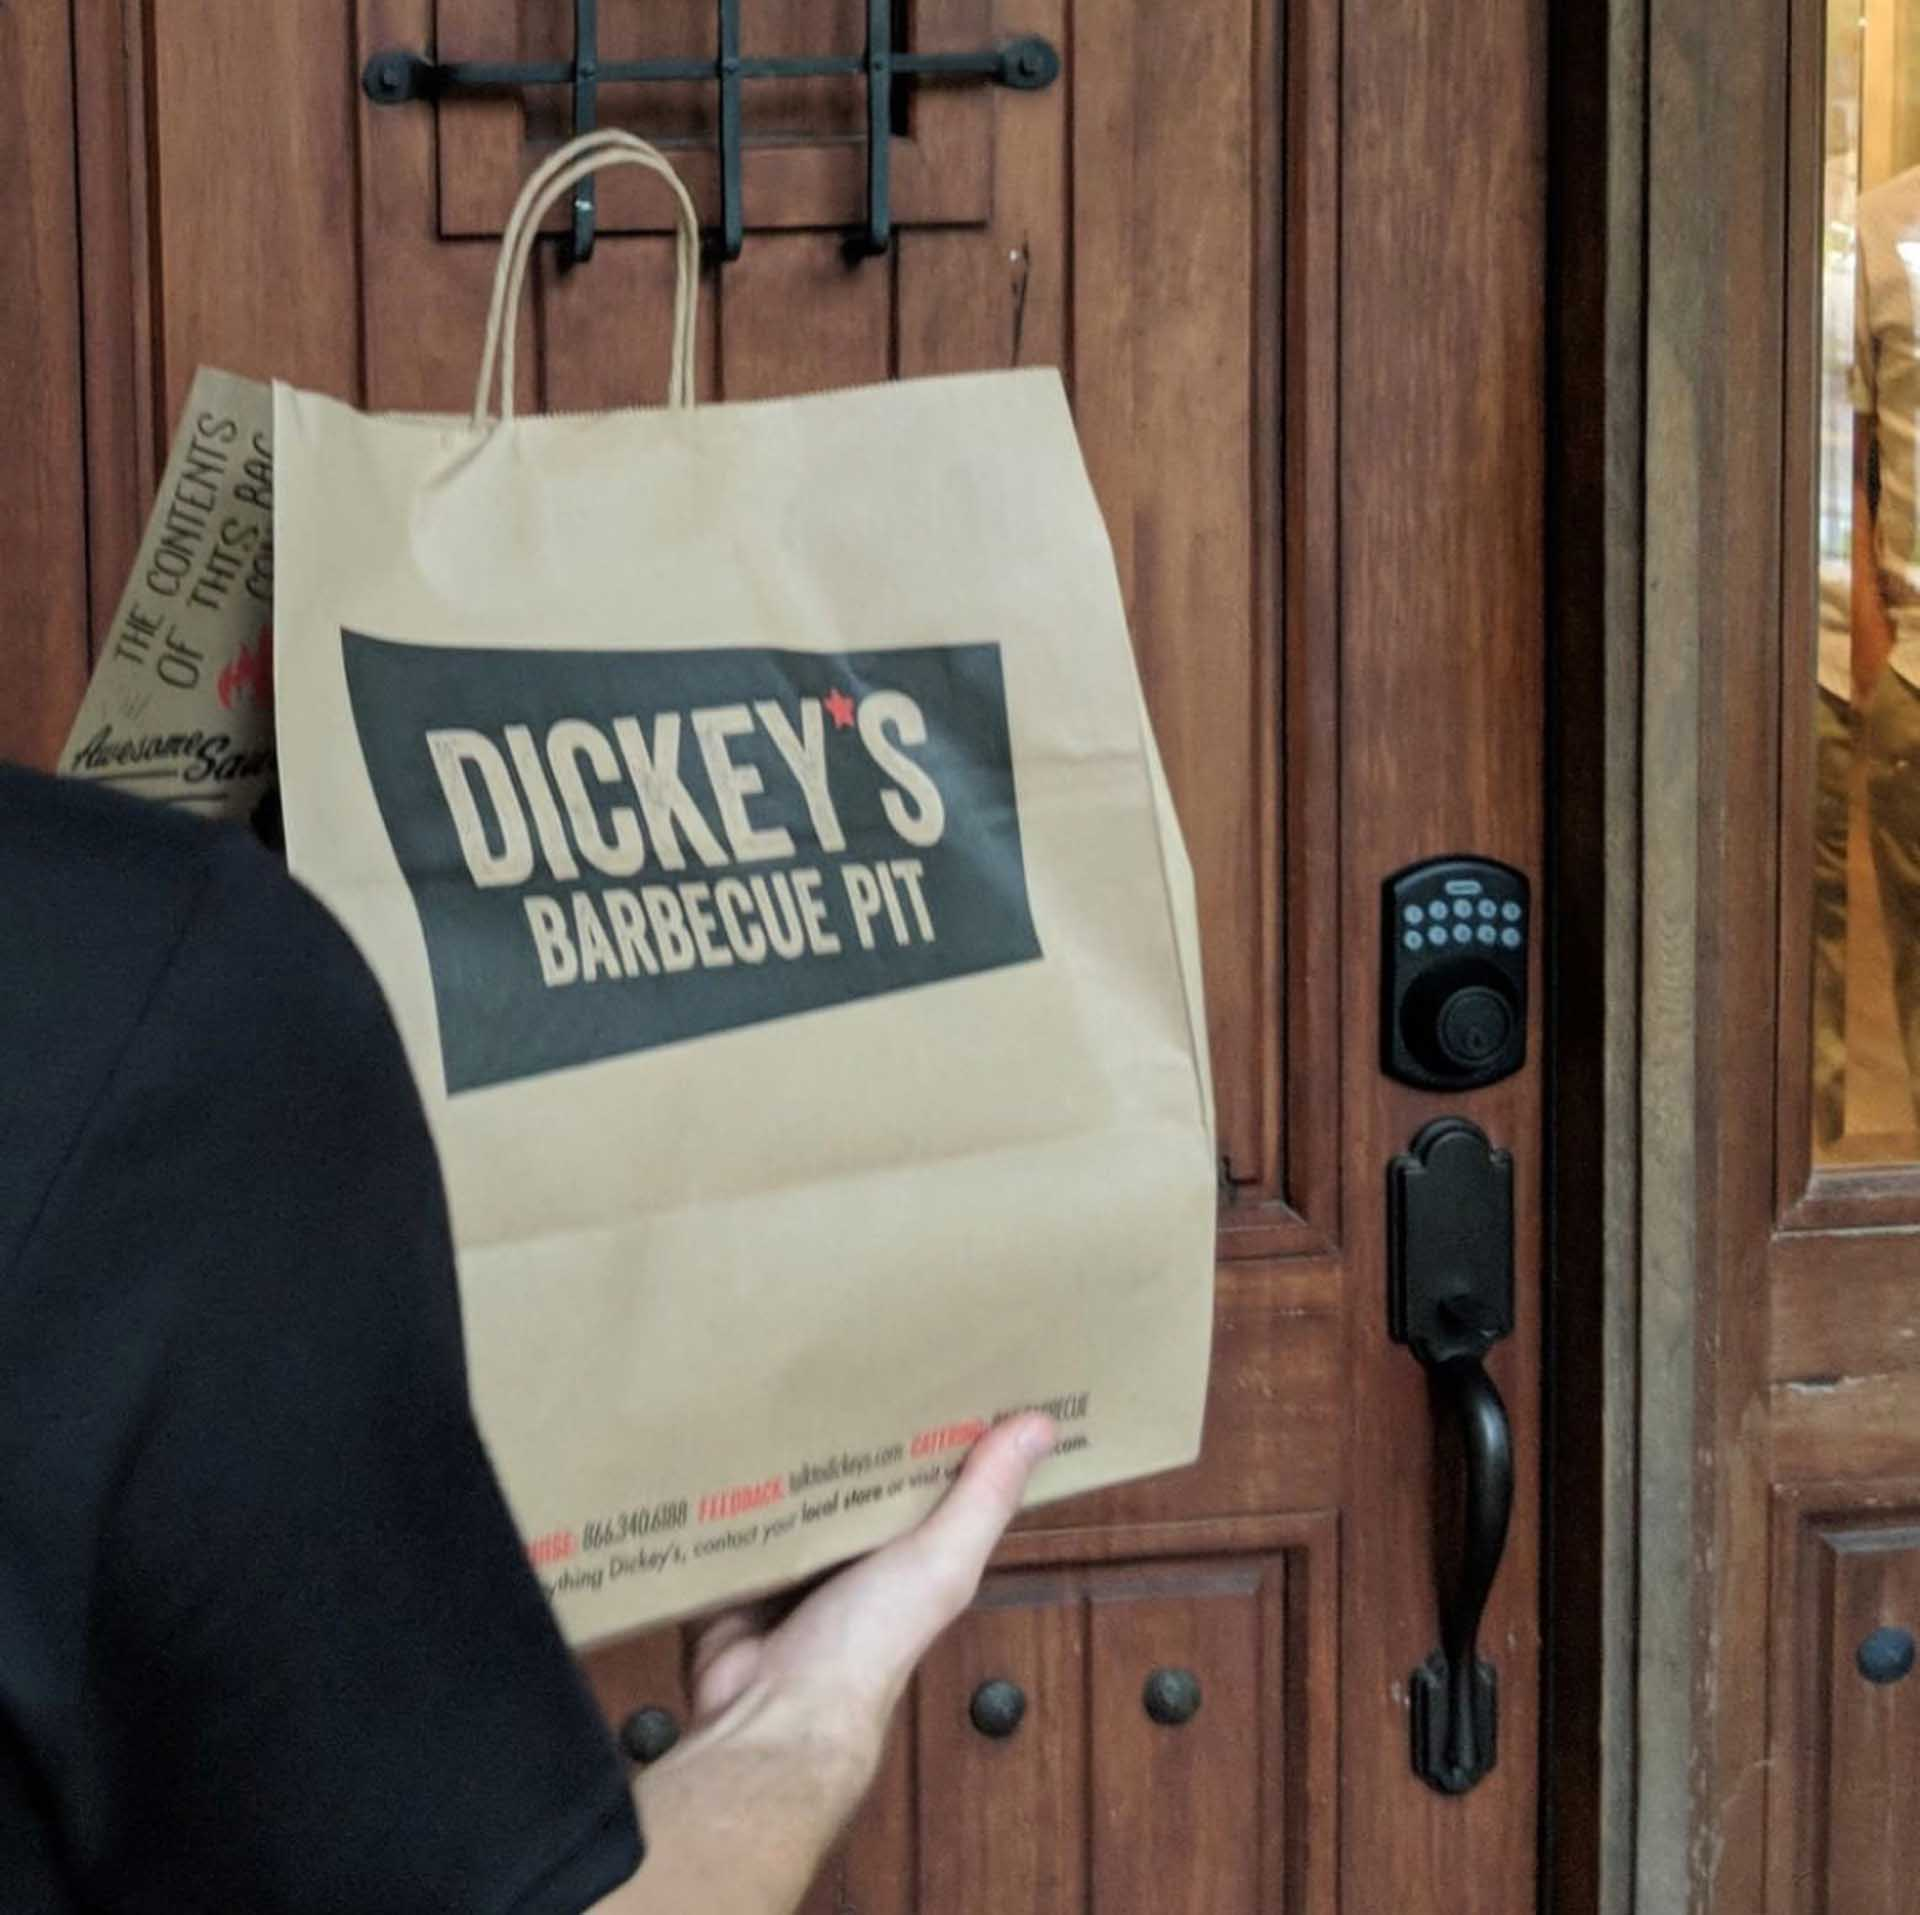 Restaurant News: Free Delivery Through March at Dickey's Barbecue Pit